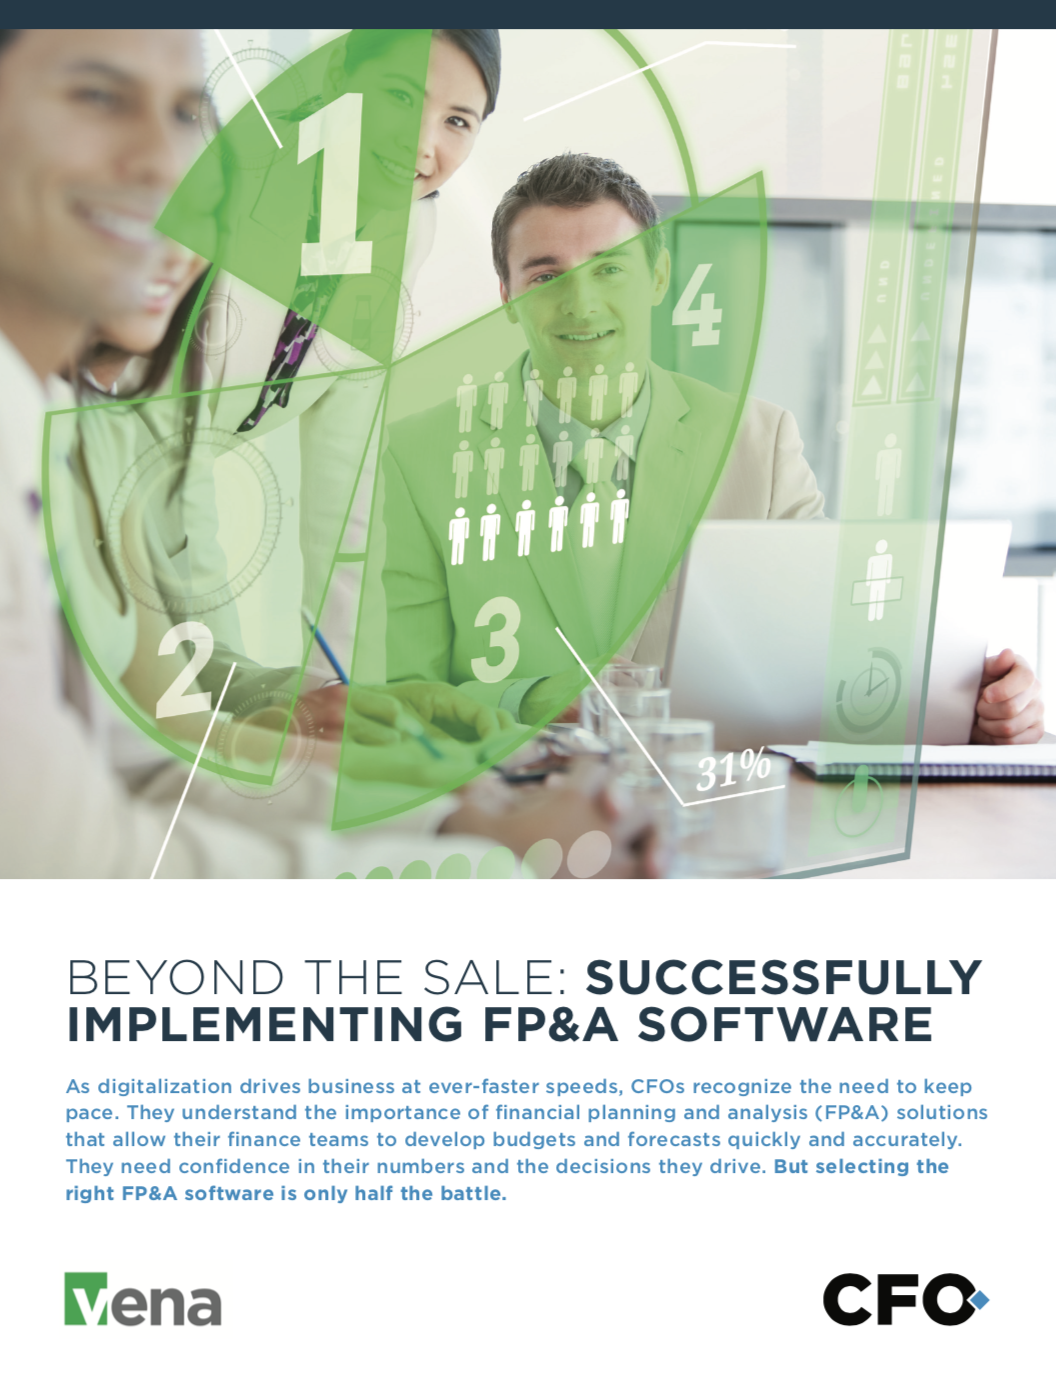 Beyond the Sale: Successfully Implementing FP&A Software - CFO